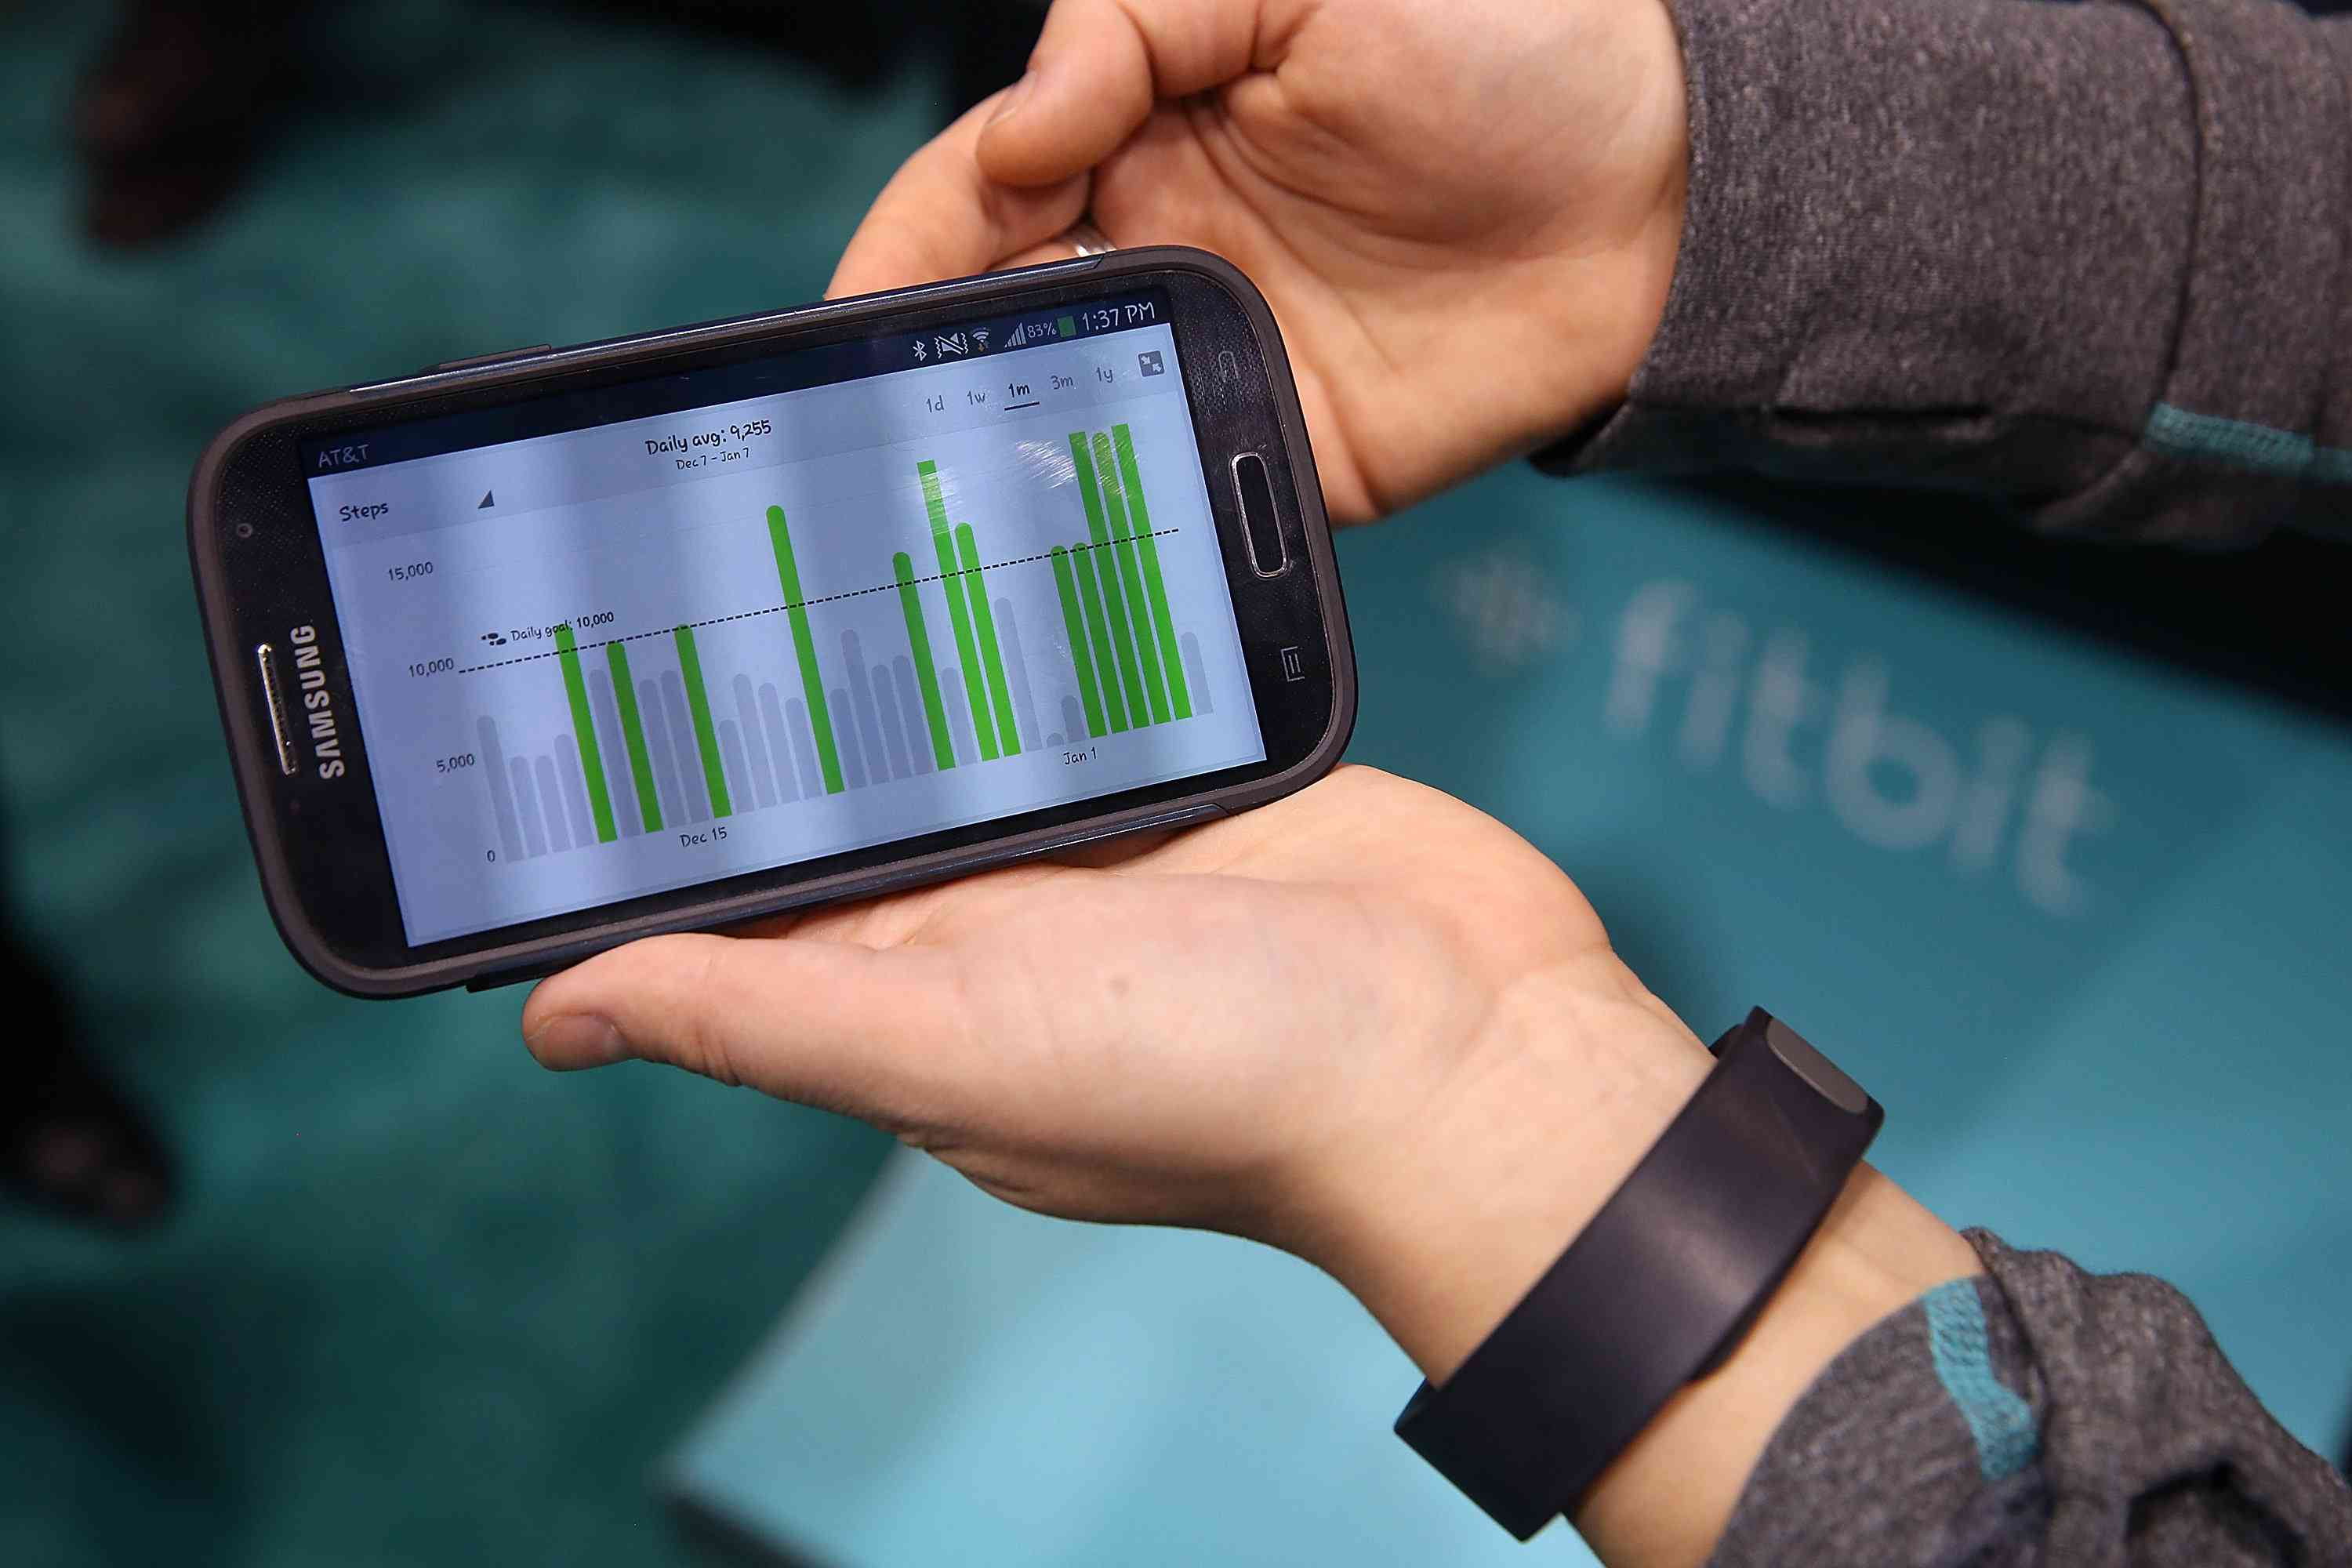 Fitbit data displayed on a smartphone